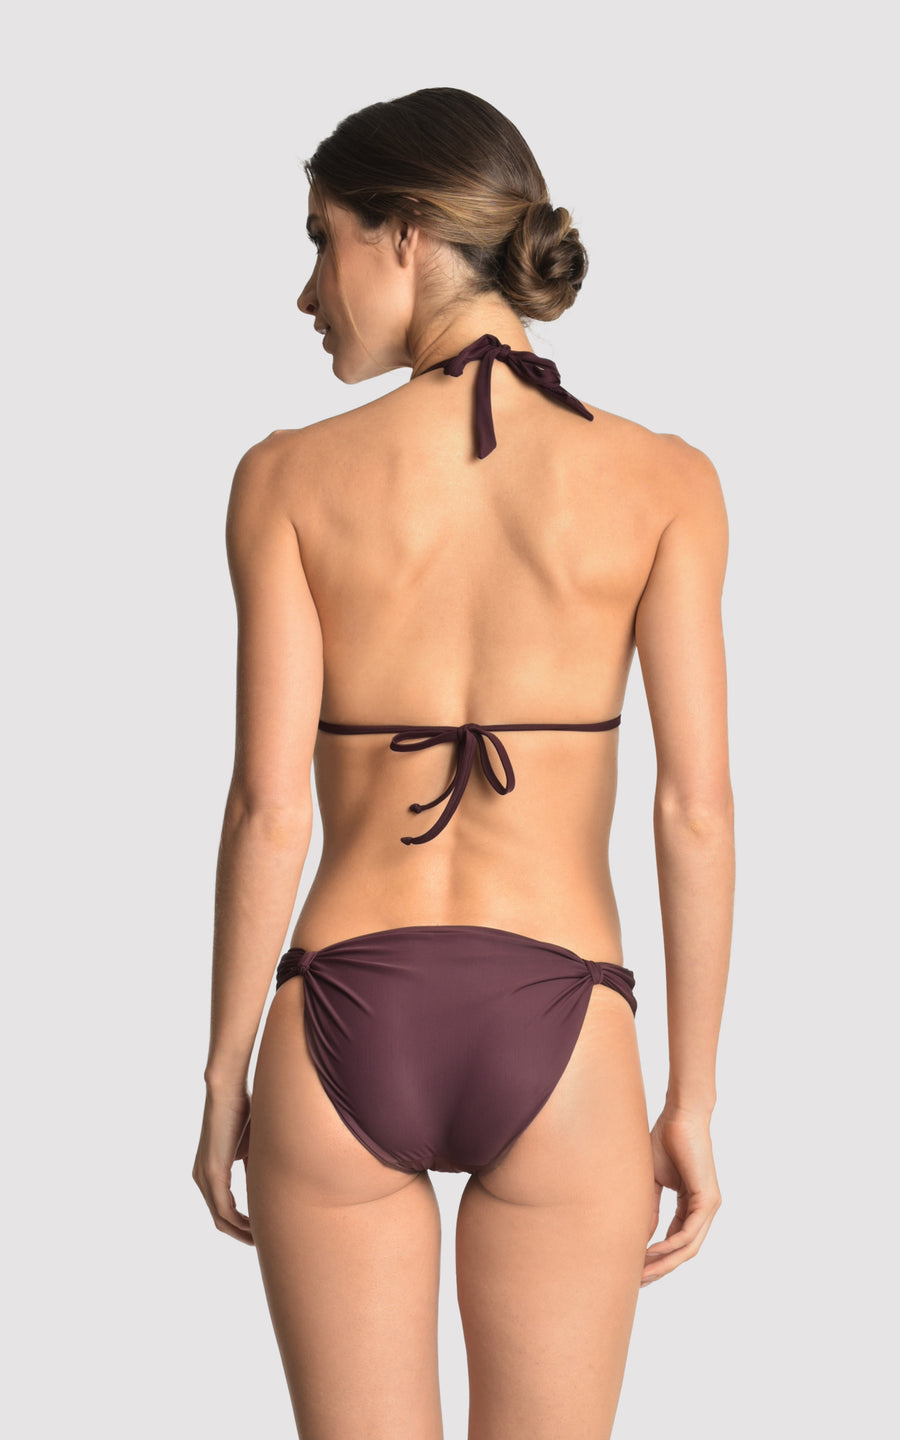 Eggplant Bikini Adjustable Accessory Top and Bottom